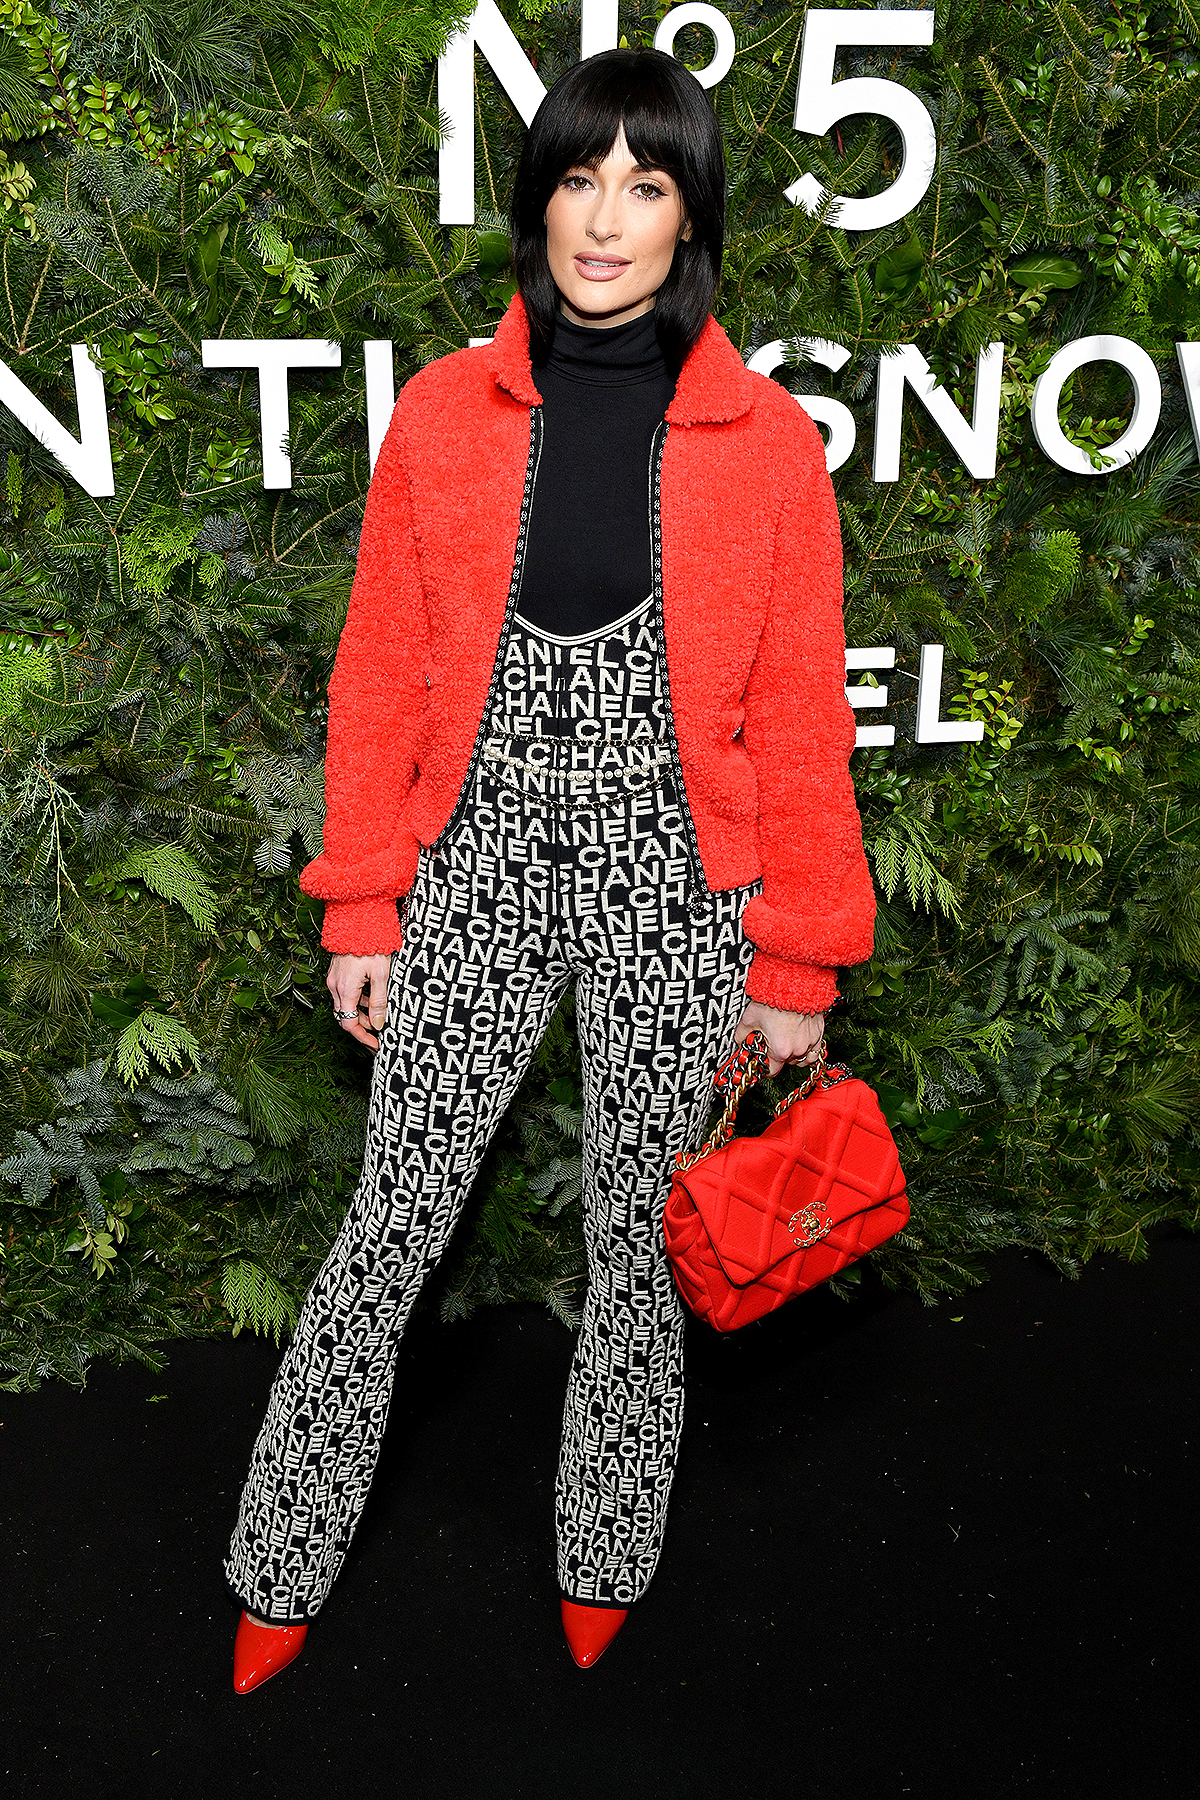 NEW YORK, NEW YORK - DECEMBER 10: Kacey Musgraves, wearing CHANEL, attends the CHANEL party to celebrate the debut of CHANEL N5 In The Snow at The Standard High Line on December 10, 2019 in New York City.